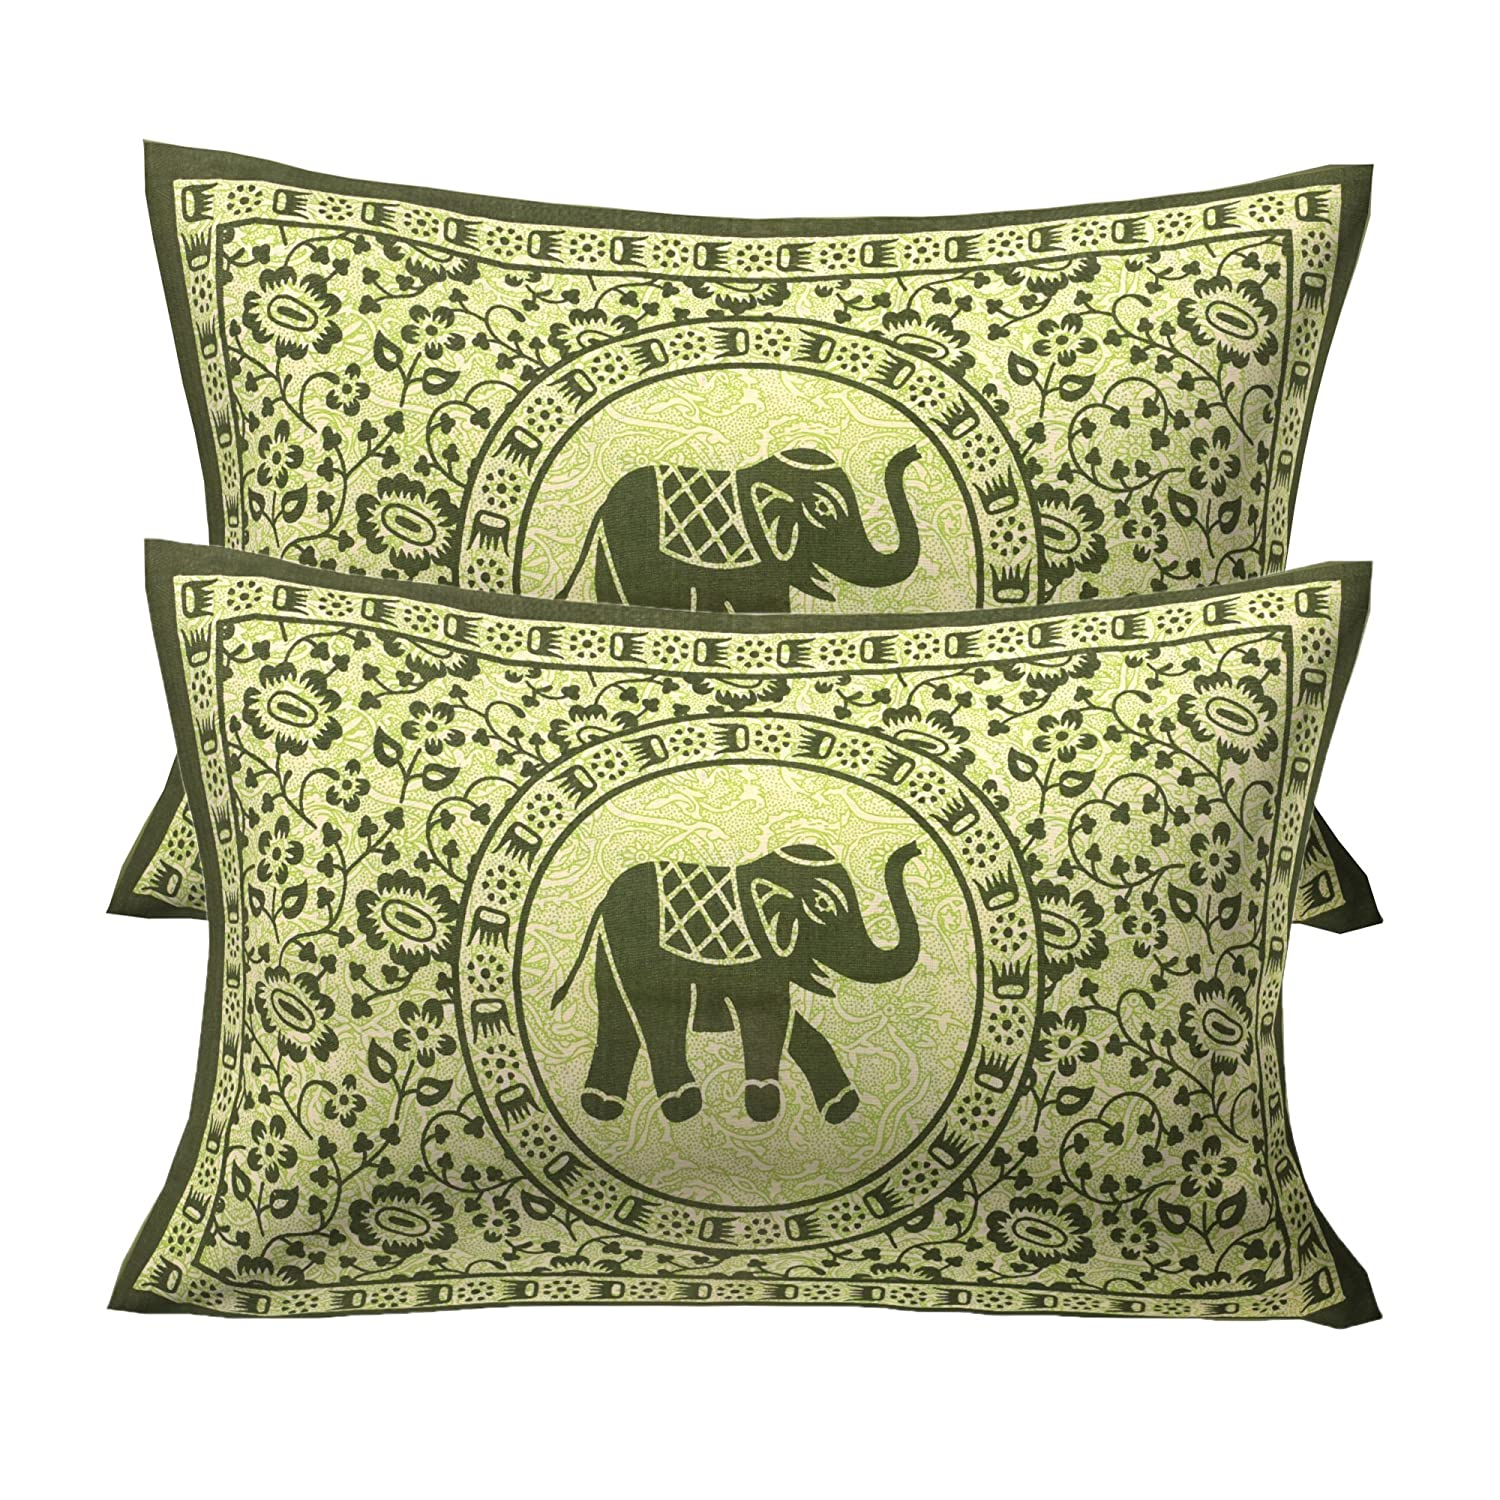 Unique Pillowcase Standard Size ELEPHANTS Handmade with Out of Print Fabric